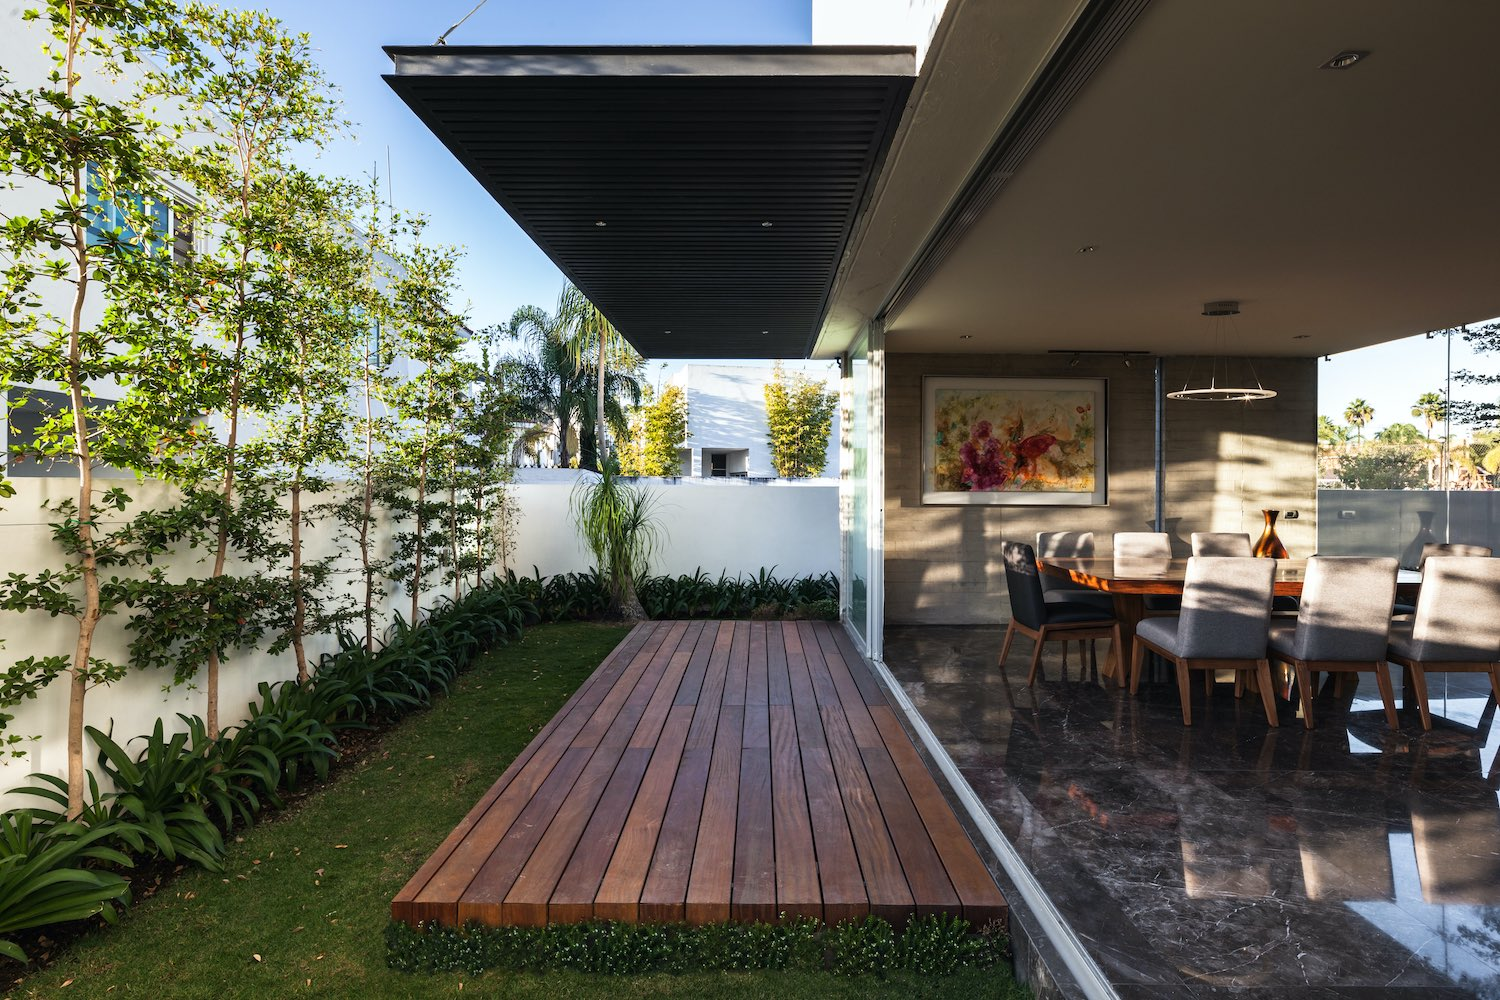 wooden deck at the backyard of the house